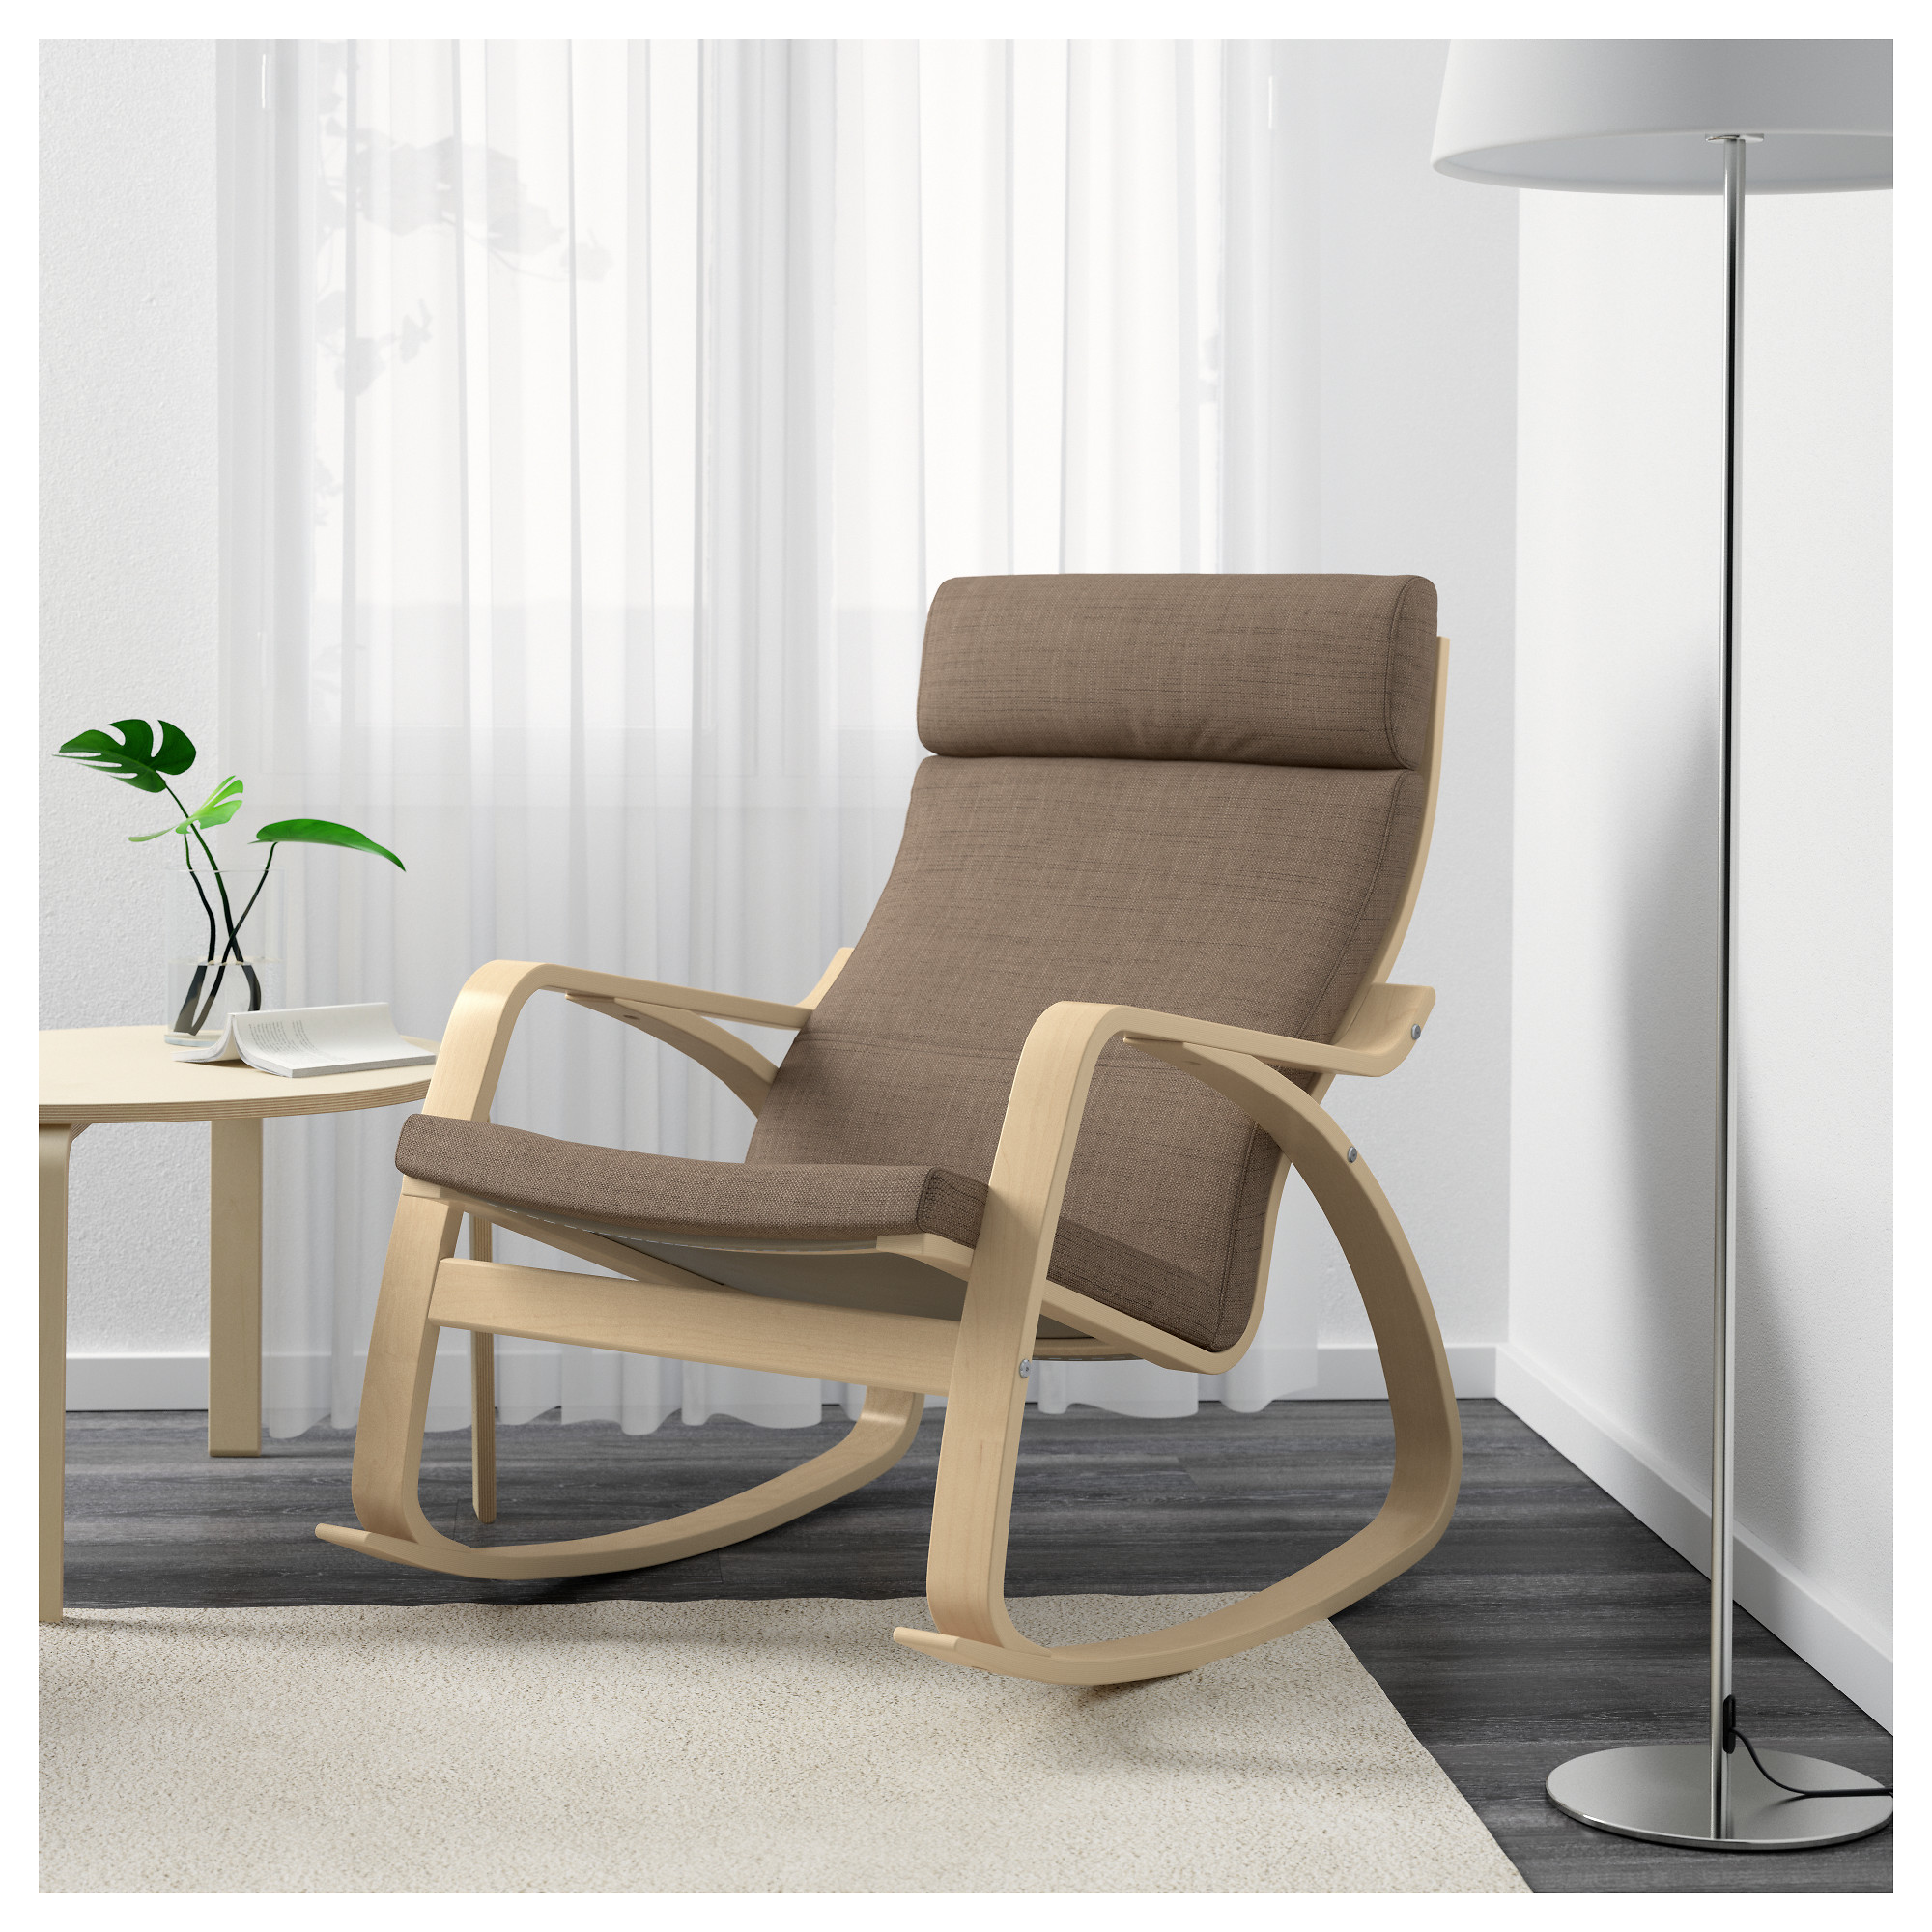 "PO""NG Rocking chair Isunda beige IKEA"